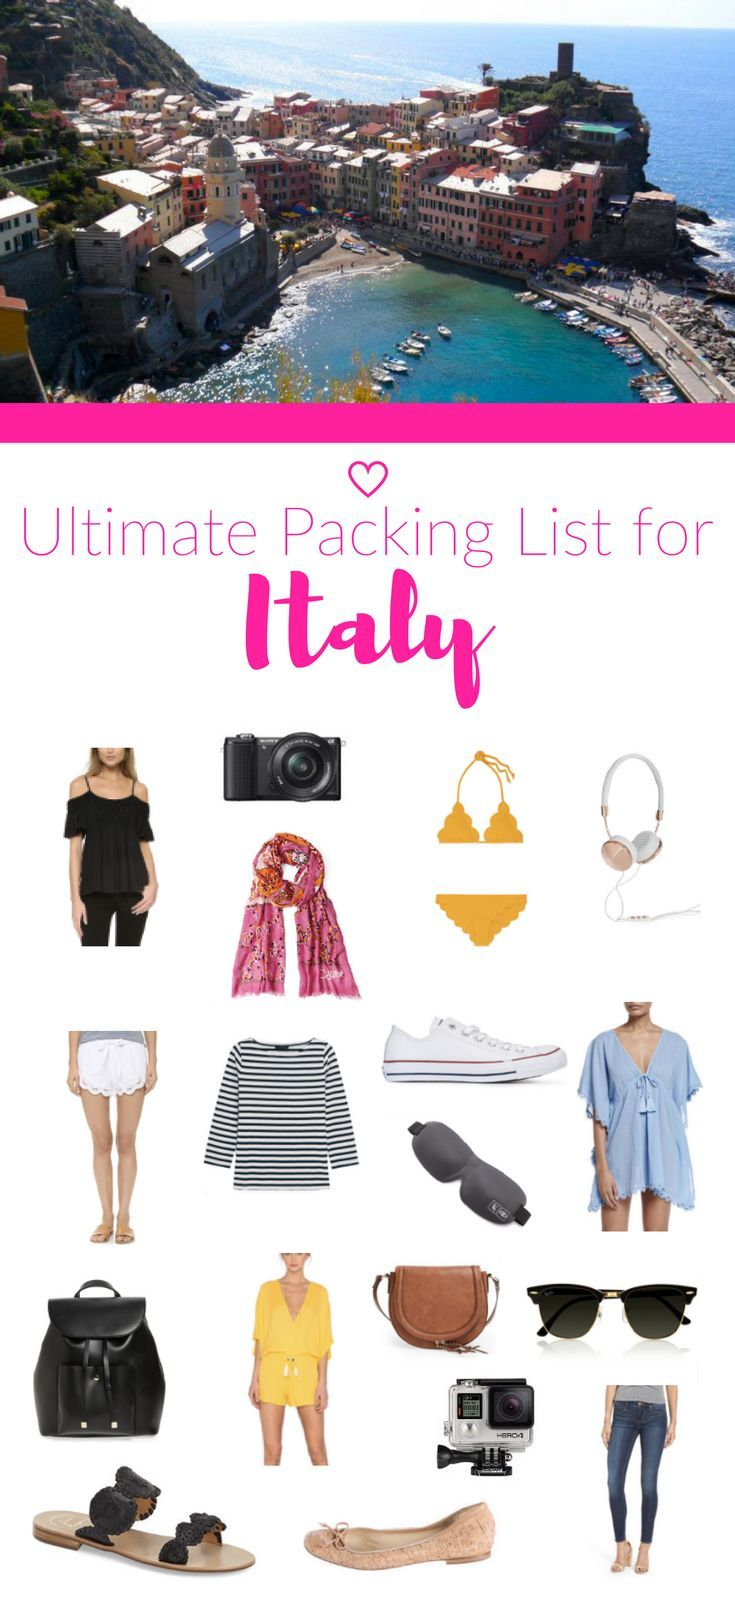 Don't know what to pack for your trip to Italy? Check out the Ultimate Packing List for Italy in the summer!